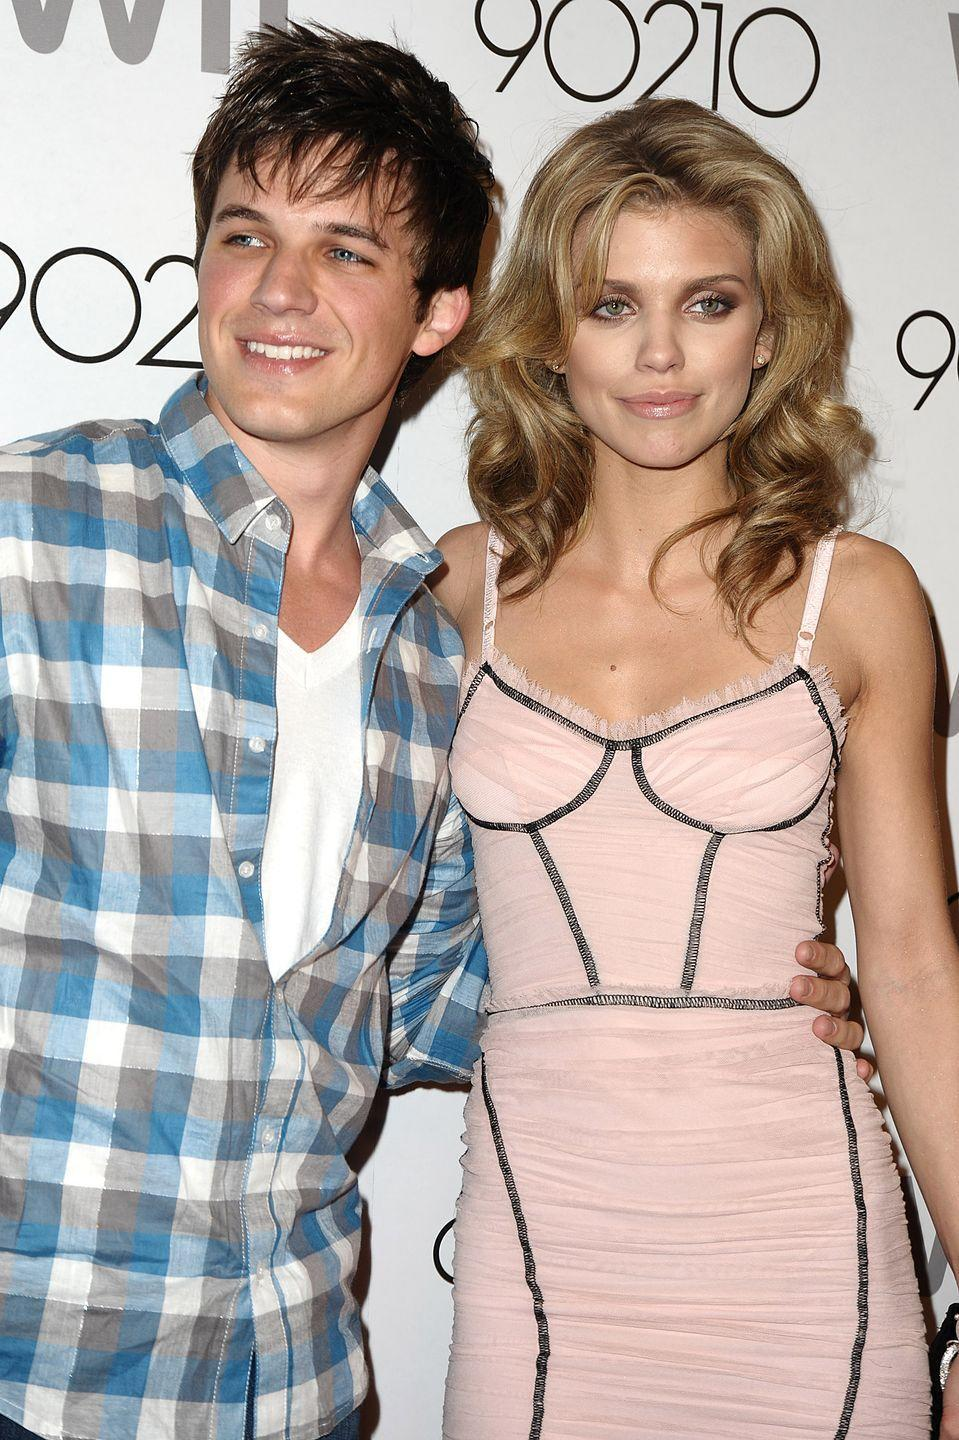 "<p>Fans of the <em>90210</em> reboot will be shocked to hear that AnnaLynne McCord wasn't a fan of kissing Matt Lanter on the show. ""You know, he actually is a really bad kisser, so it kind of sucks,"" <a href=""https://www.j-14.com/posts/8-celebrities-reveal-their-worst-on-screen-kisses-ever-53839/"" rel=""nofollow noopener"" target=""_blank"" data-ylk=""slk:she revealed"" class=""link rapid-noclick-resp"">she revealed</a>.</p>"